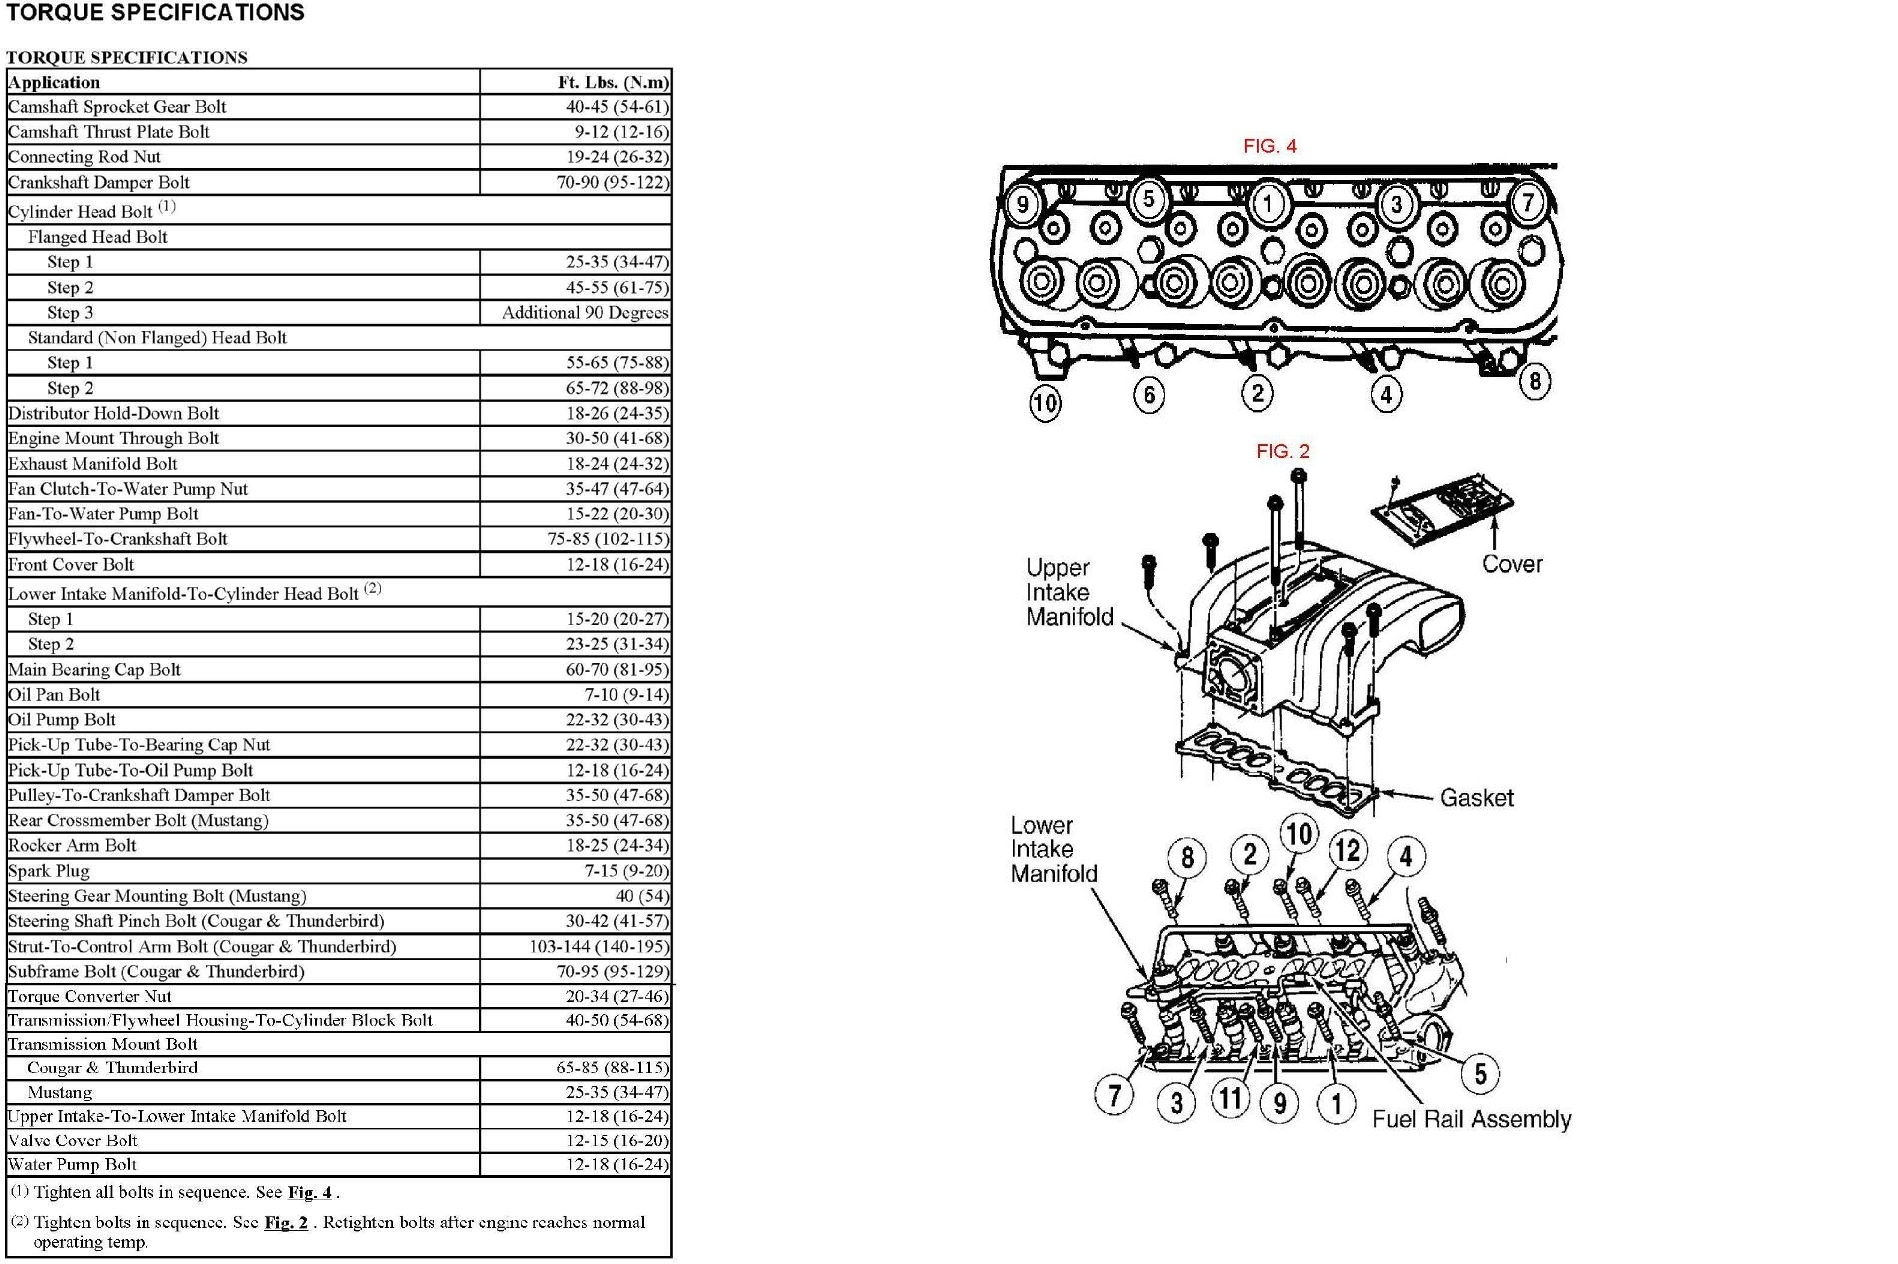 Chevy Blazer 4 3 Vortec Engine Diagram Blazer Engine Diagram Wiring Diagram Odicis